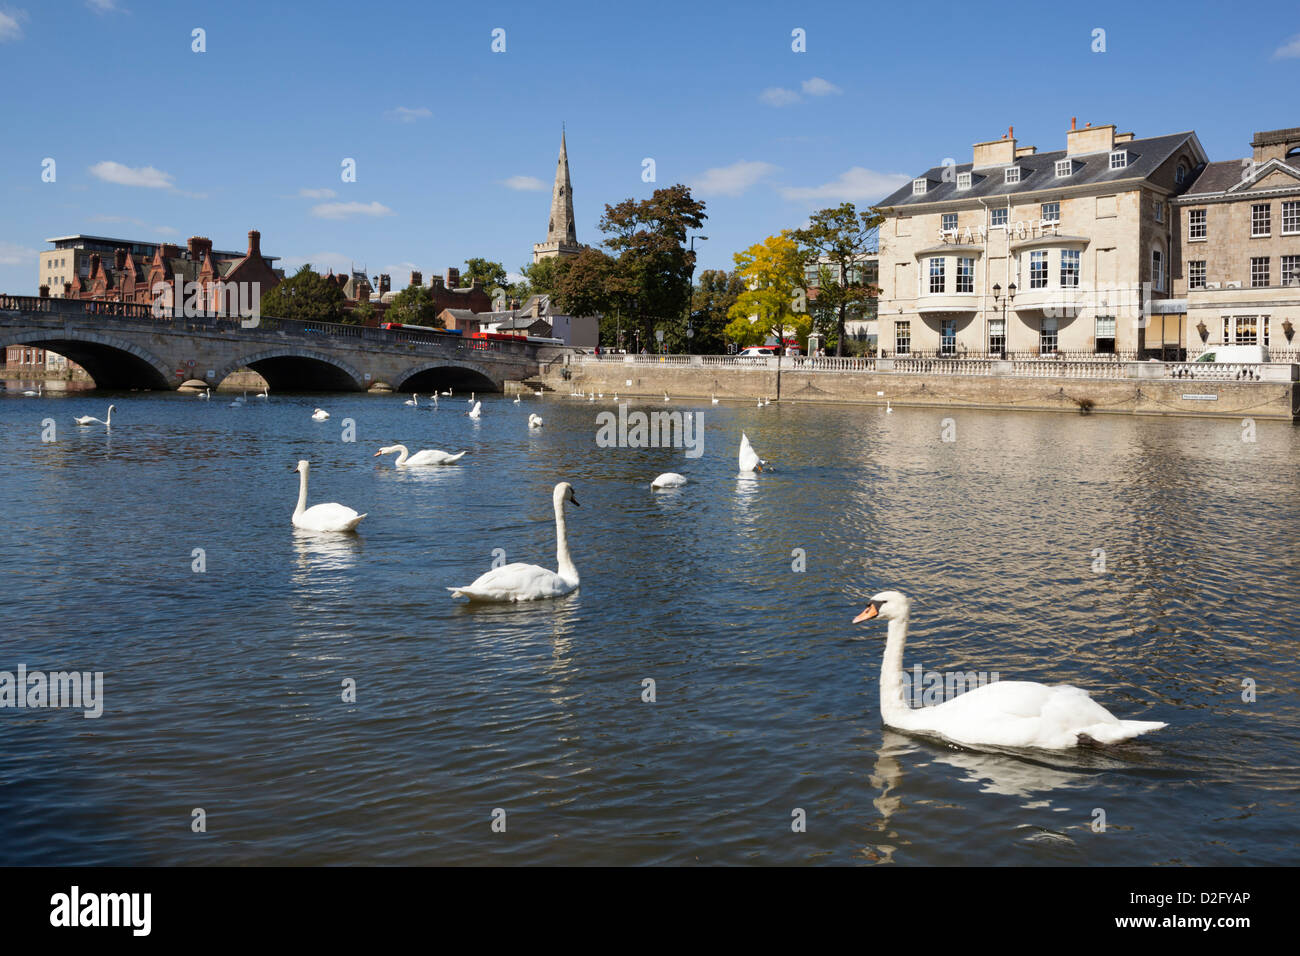 Swan Hotel by River Great Ouse - Stock Image